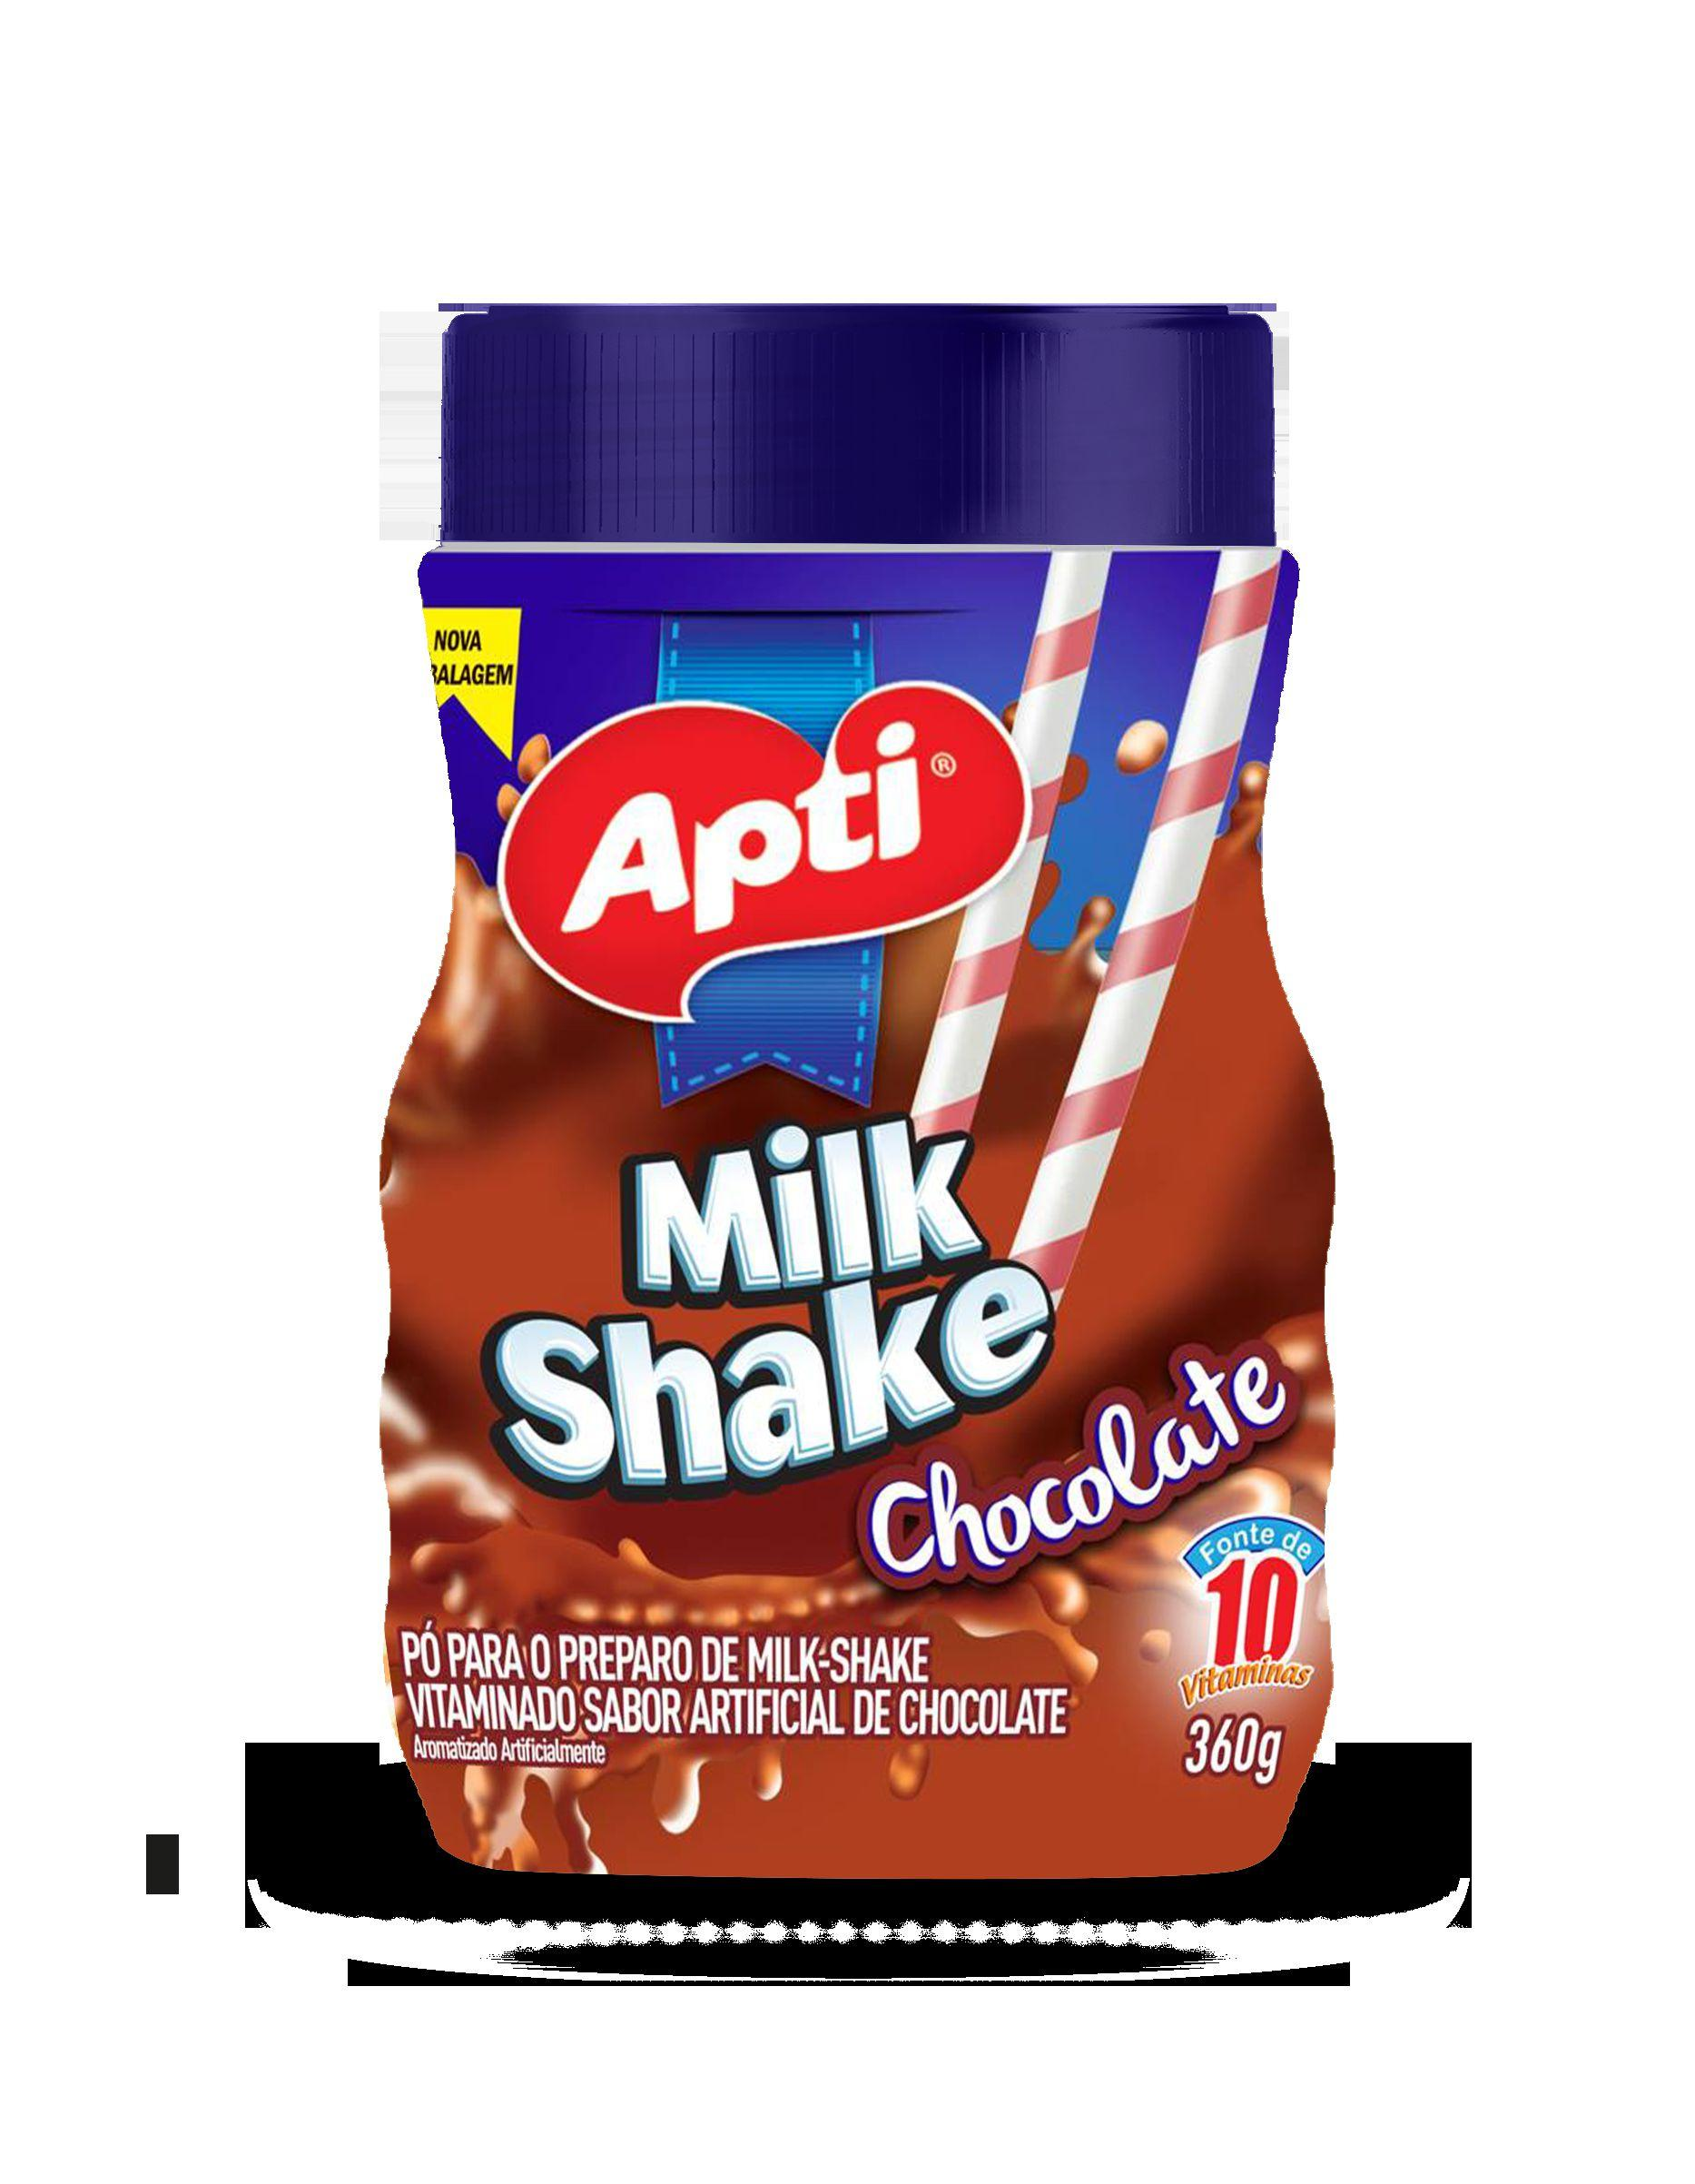 Milk Shake Apti 360g Chocolate